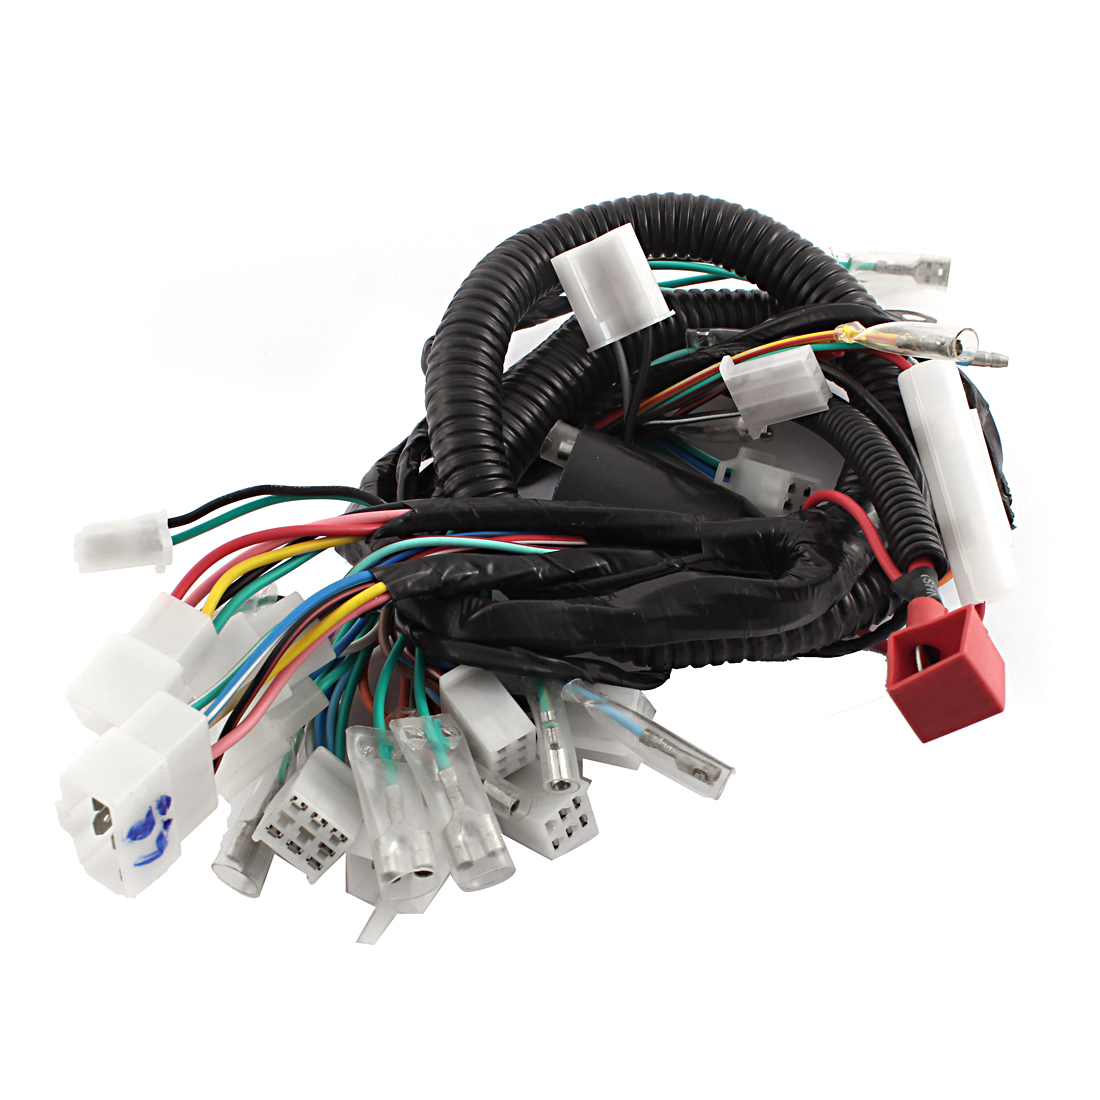 Motorcycle Ultima Complete System Electrical Main Wiring Harness for GS